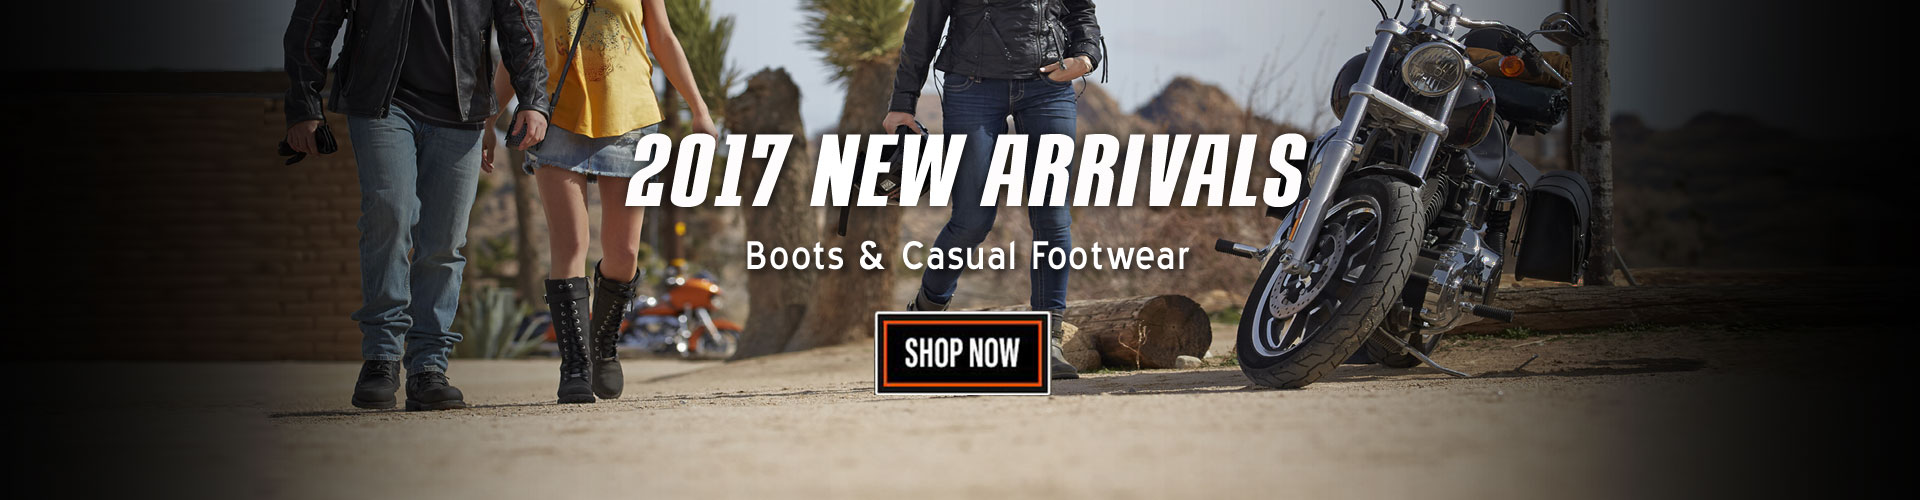 2017 Harley-Davidson Footwear and Boots